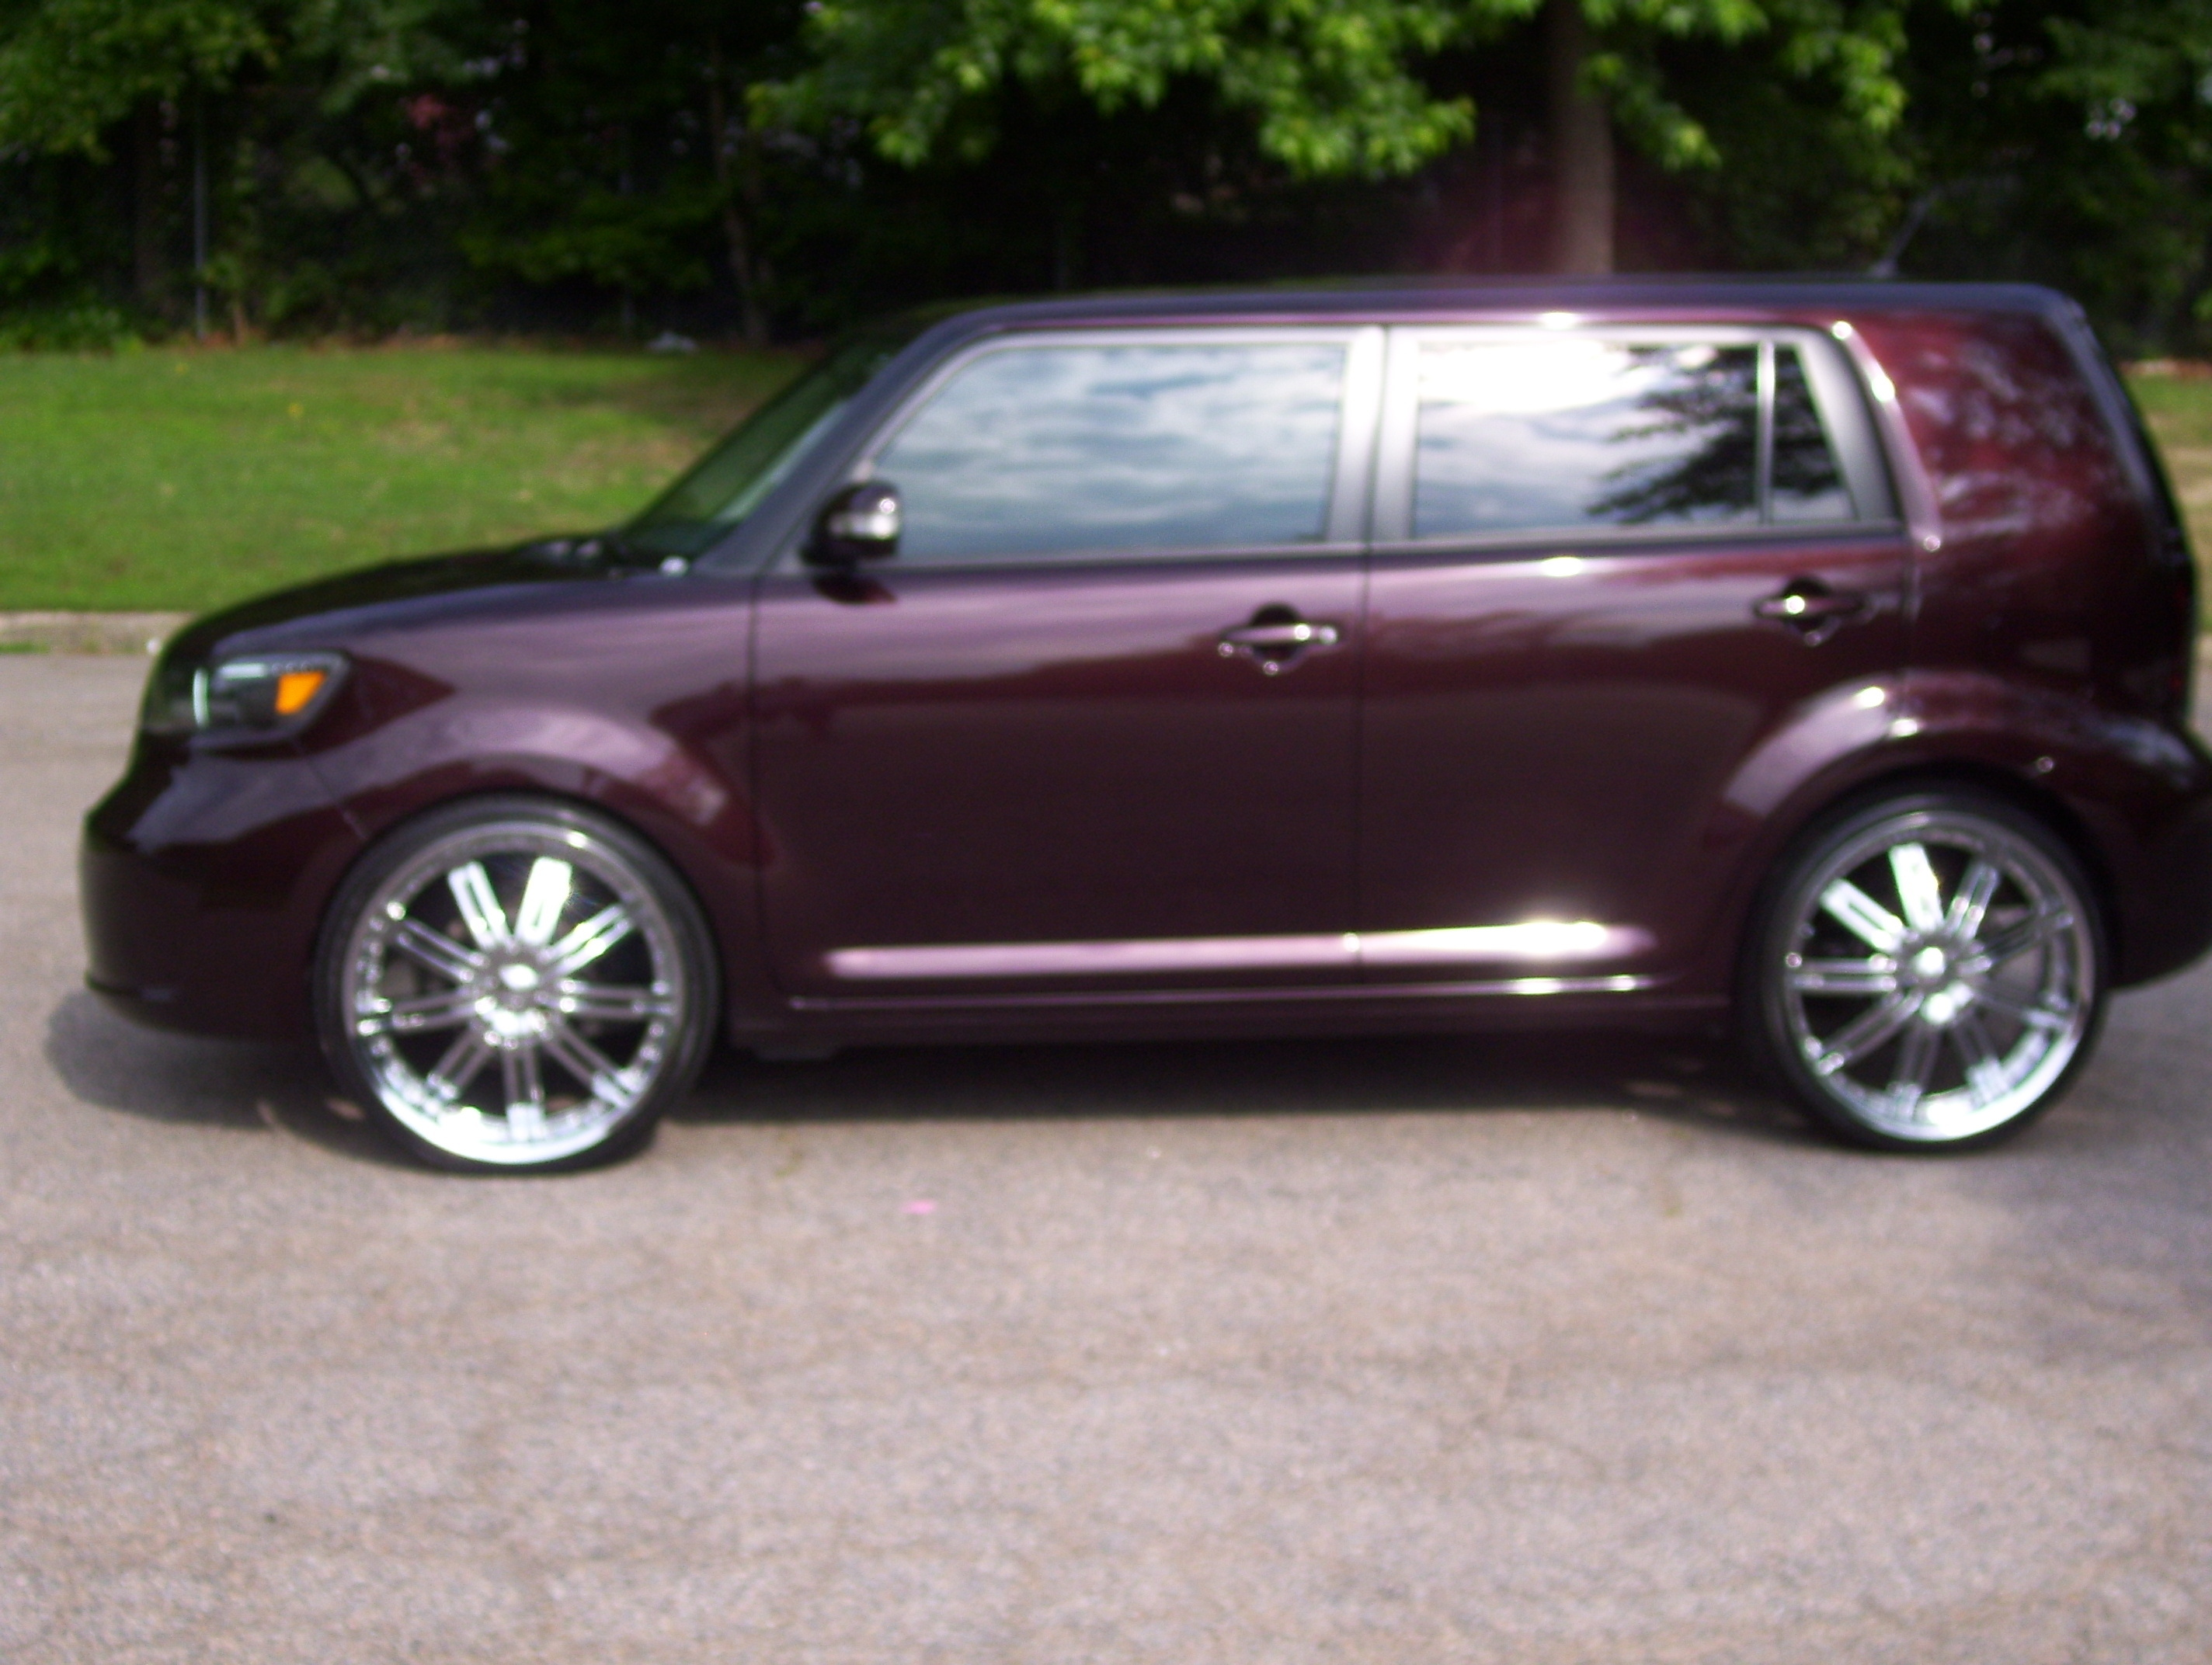 300moss 2008 scion xb specs photos modification info at cardomain. Black Bedroom Furniture Sets. Home Design Ideas